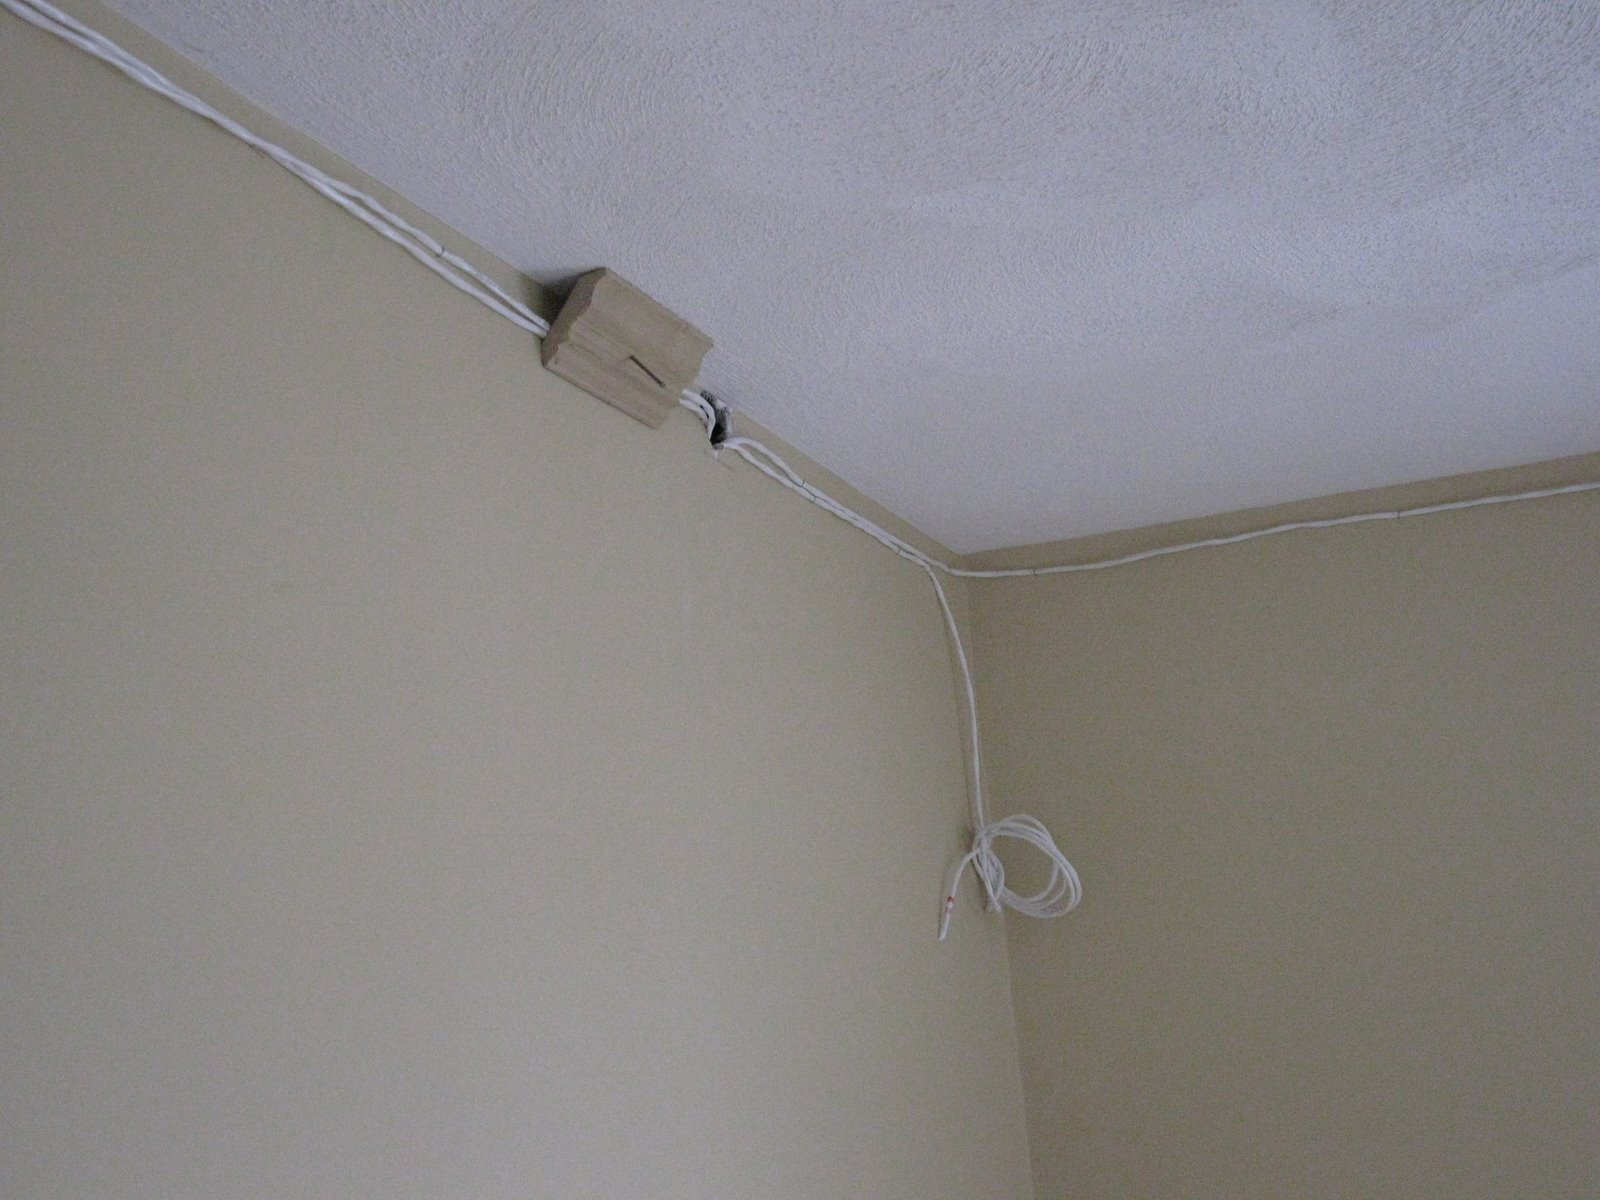 How To Install Speaker Wire Behind Crown Molding A Concord Carpenter Wiring Inside Walls Hiding The Wires In Stud Bay